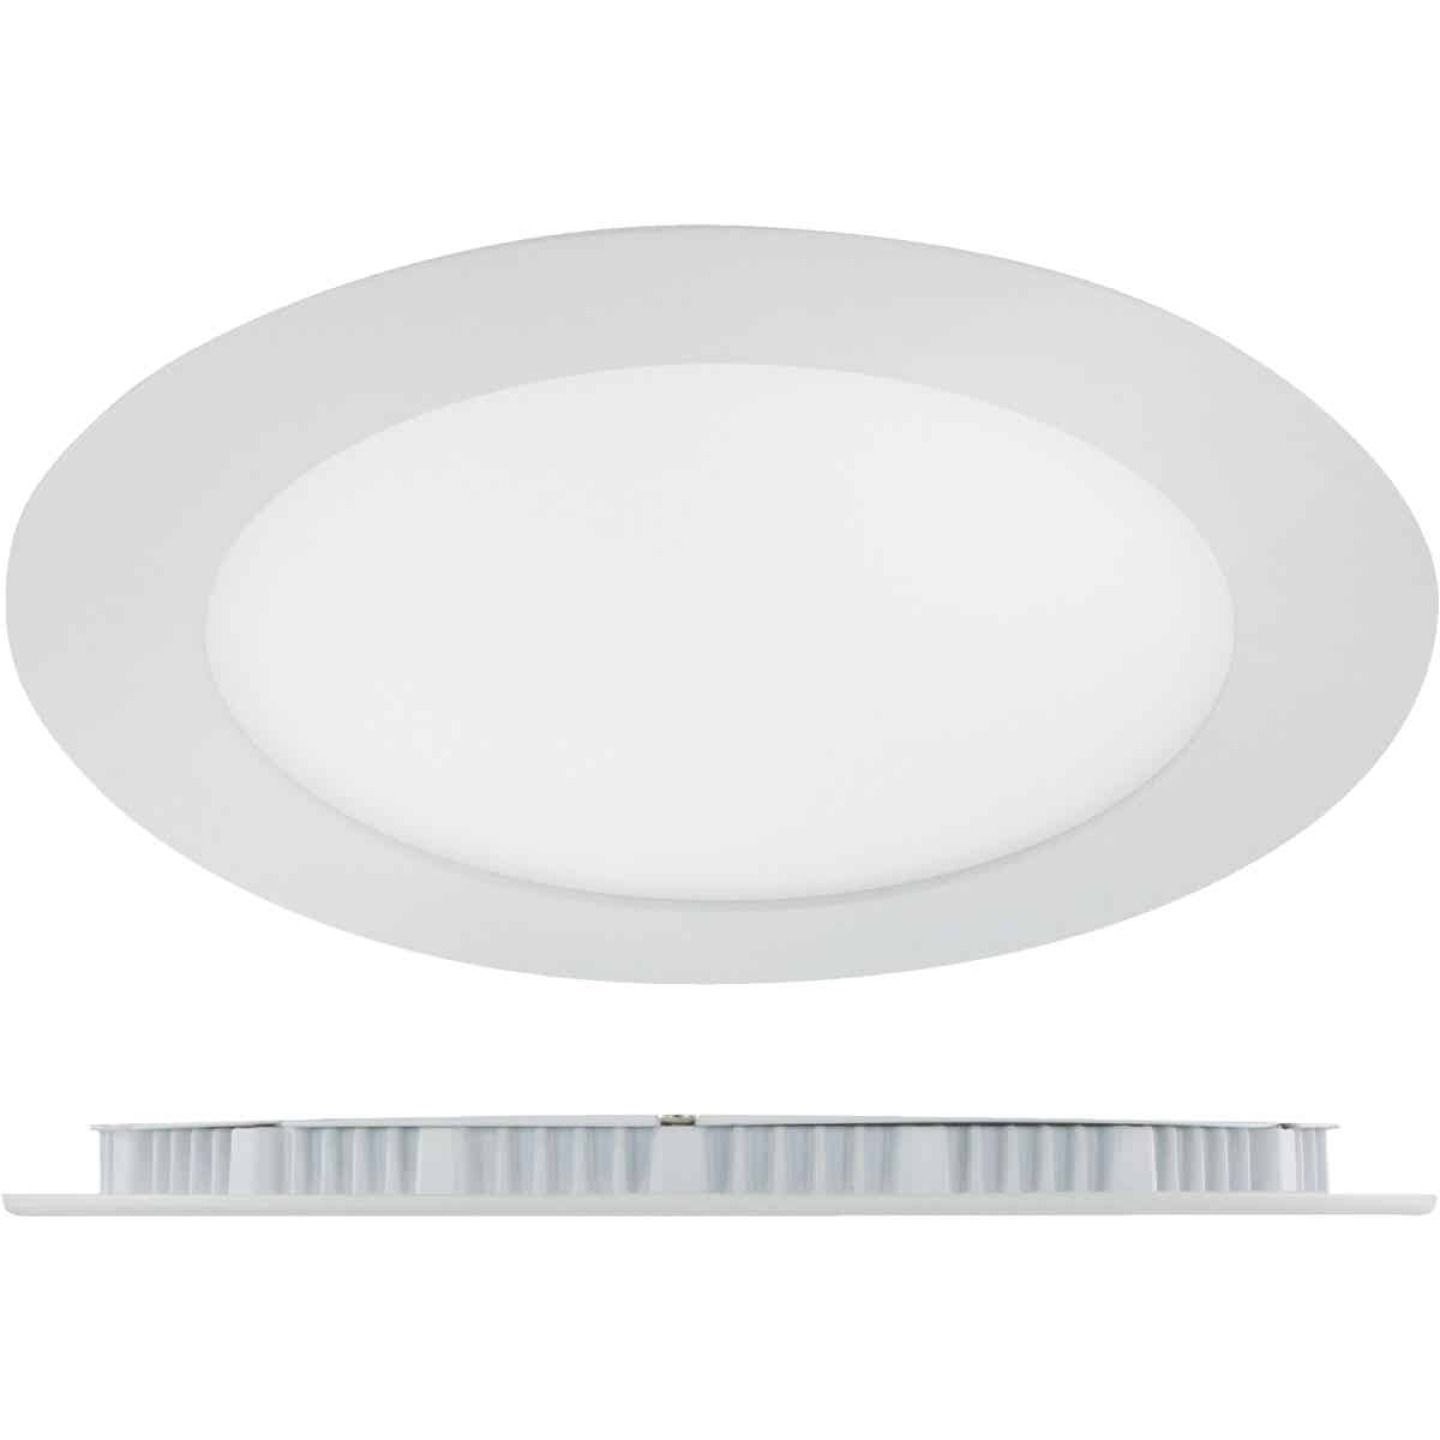 Liteline Trenz ThinLED 6 In. New Construction/Remodel IC White 700 Lm. Sunset Dimming Recessed Light Kit Image 1